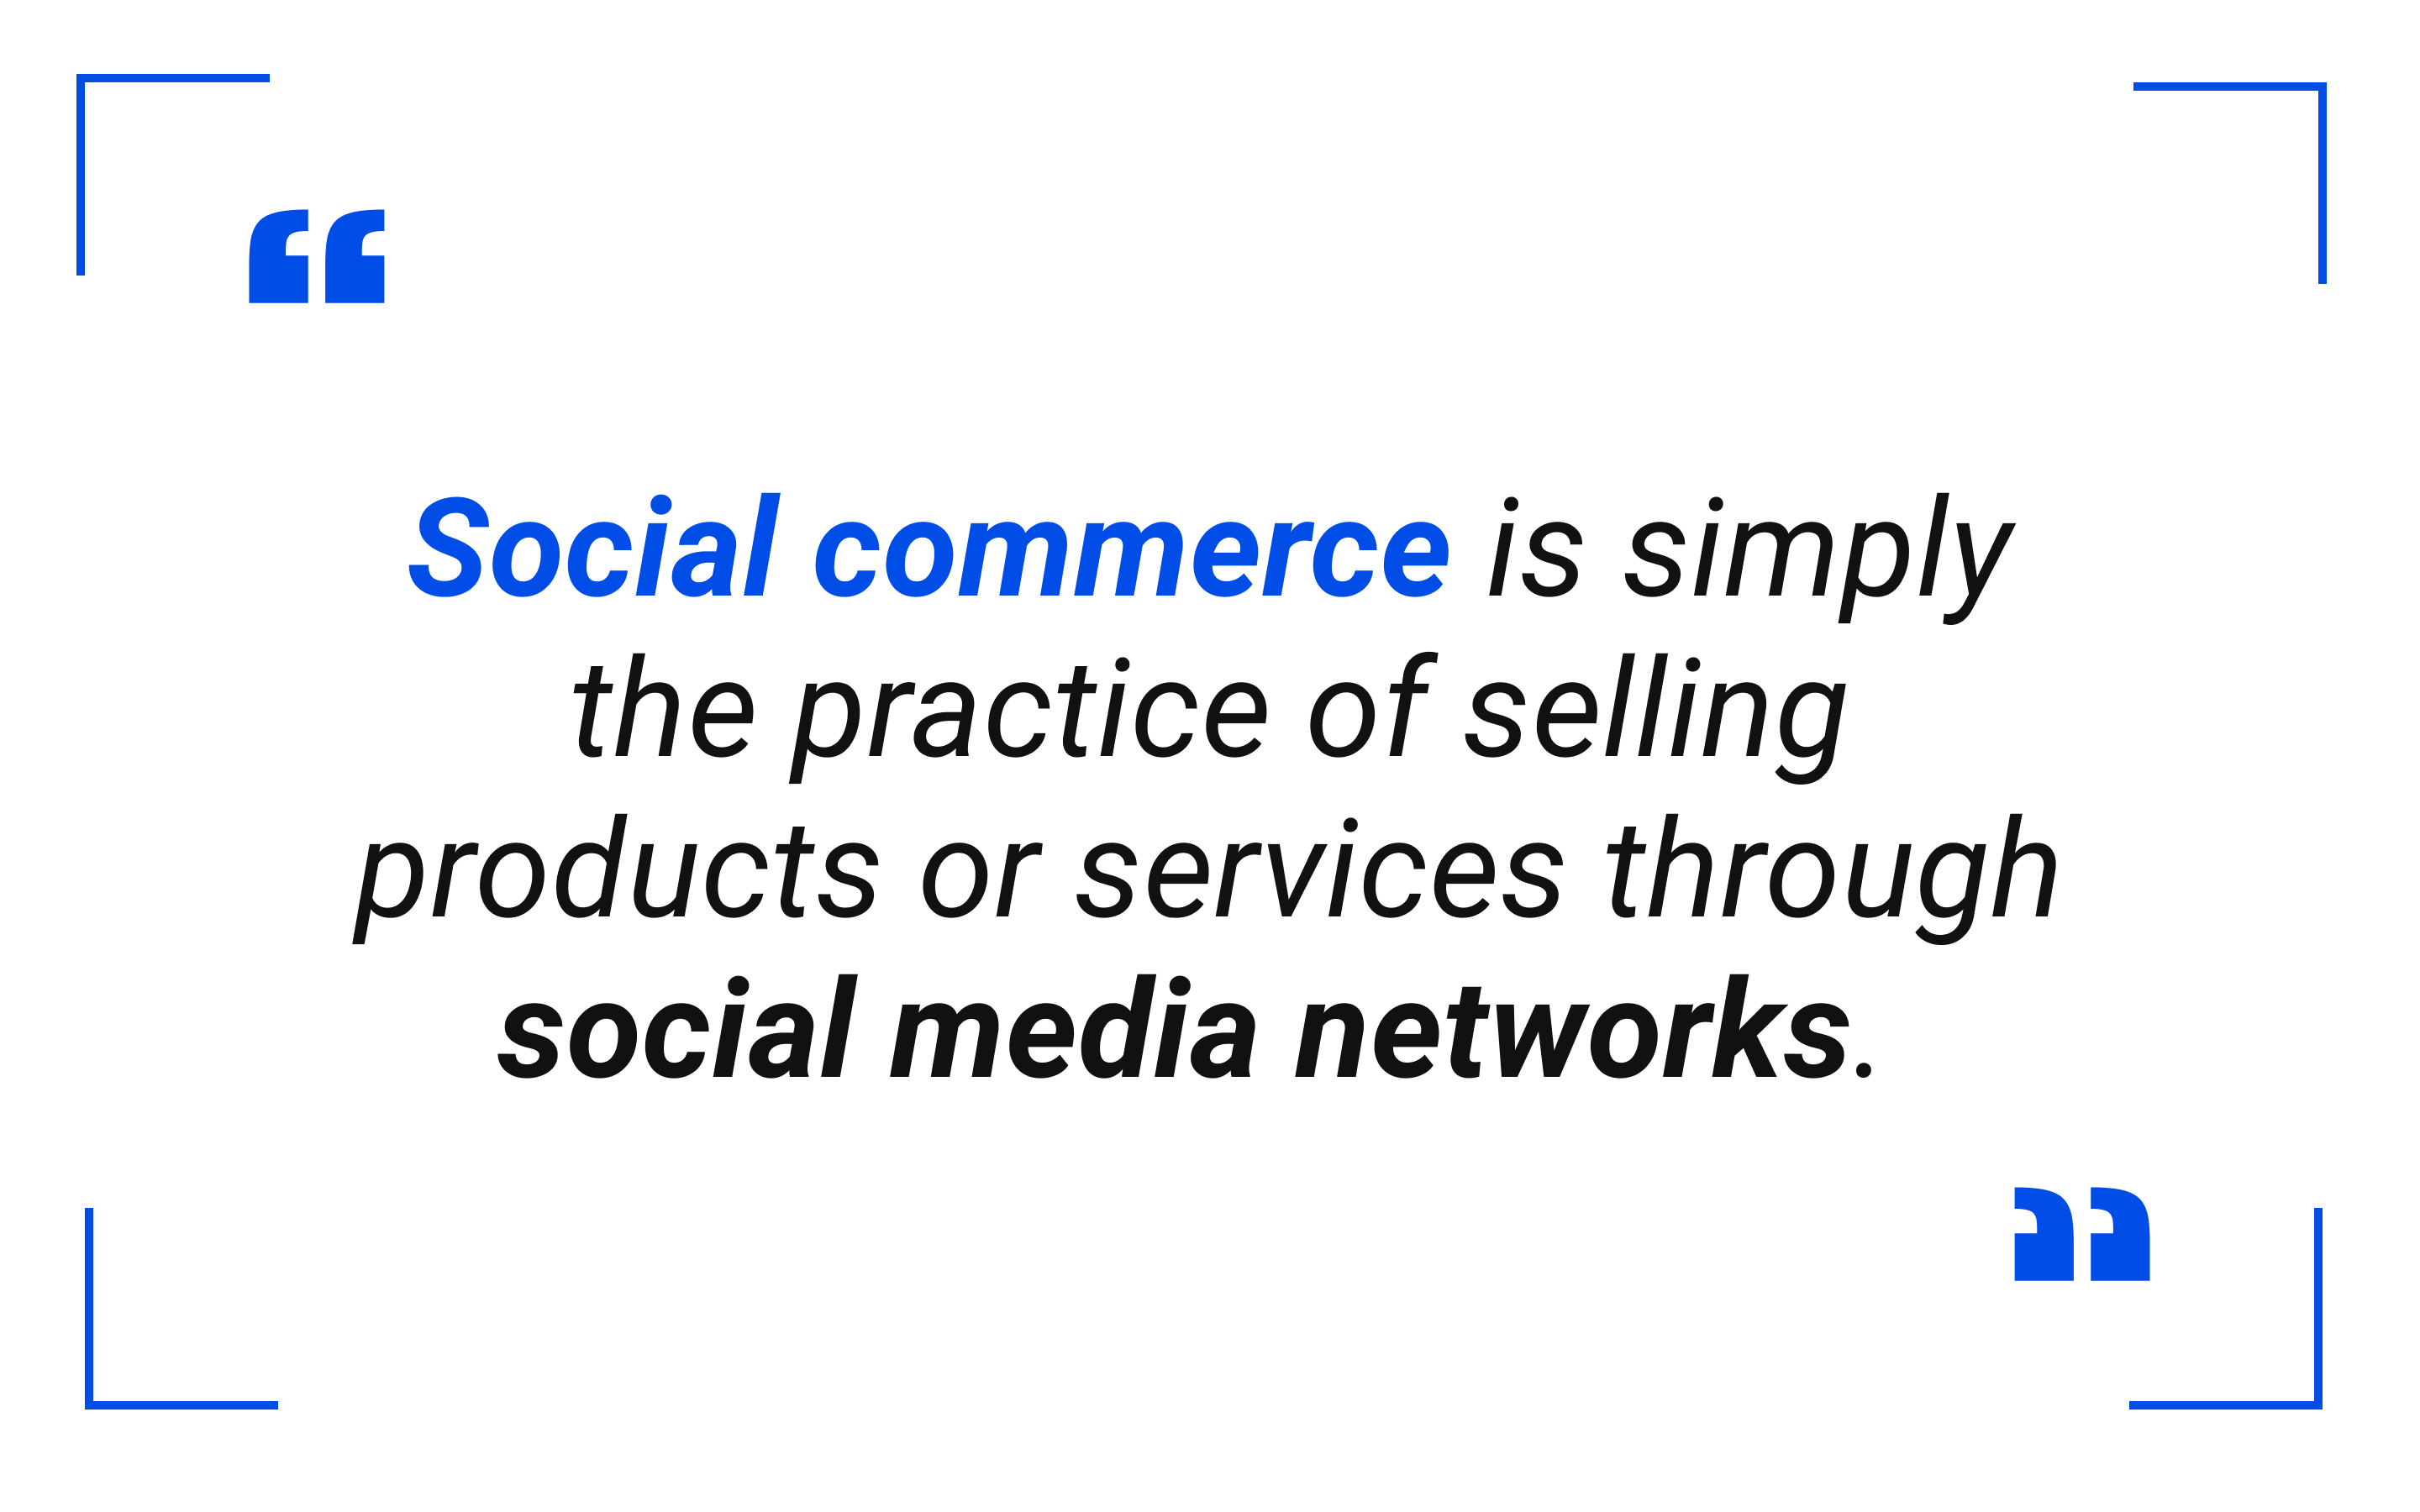 Social commerce is simply the practice of selling products or services through social media networks